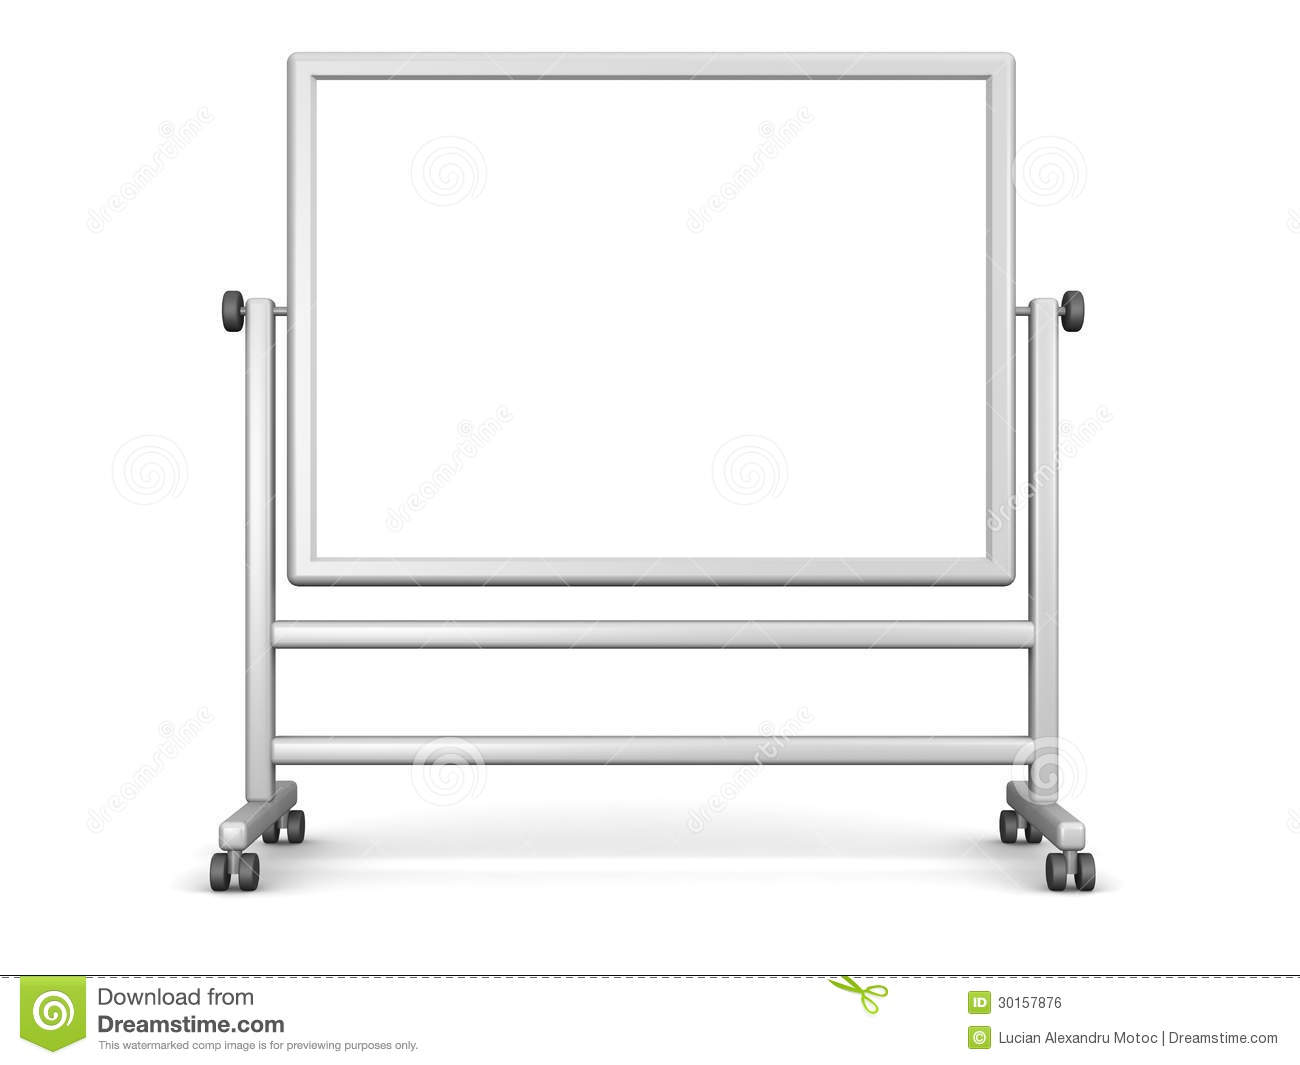 whiteboard clipart black and white. royalty-free stock photo whiteboard clipart black and white